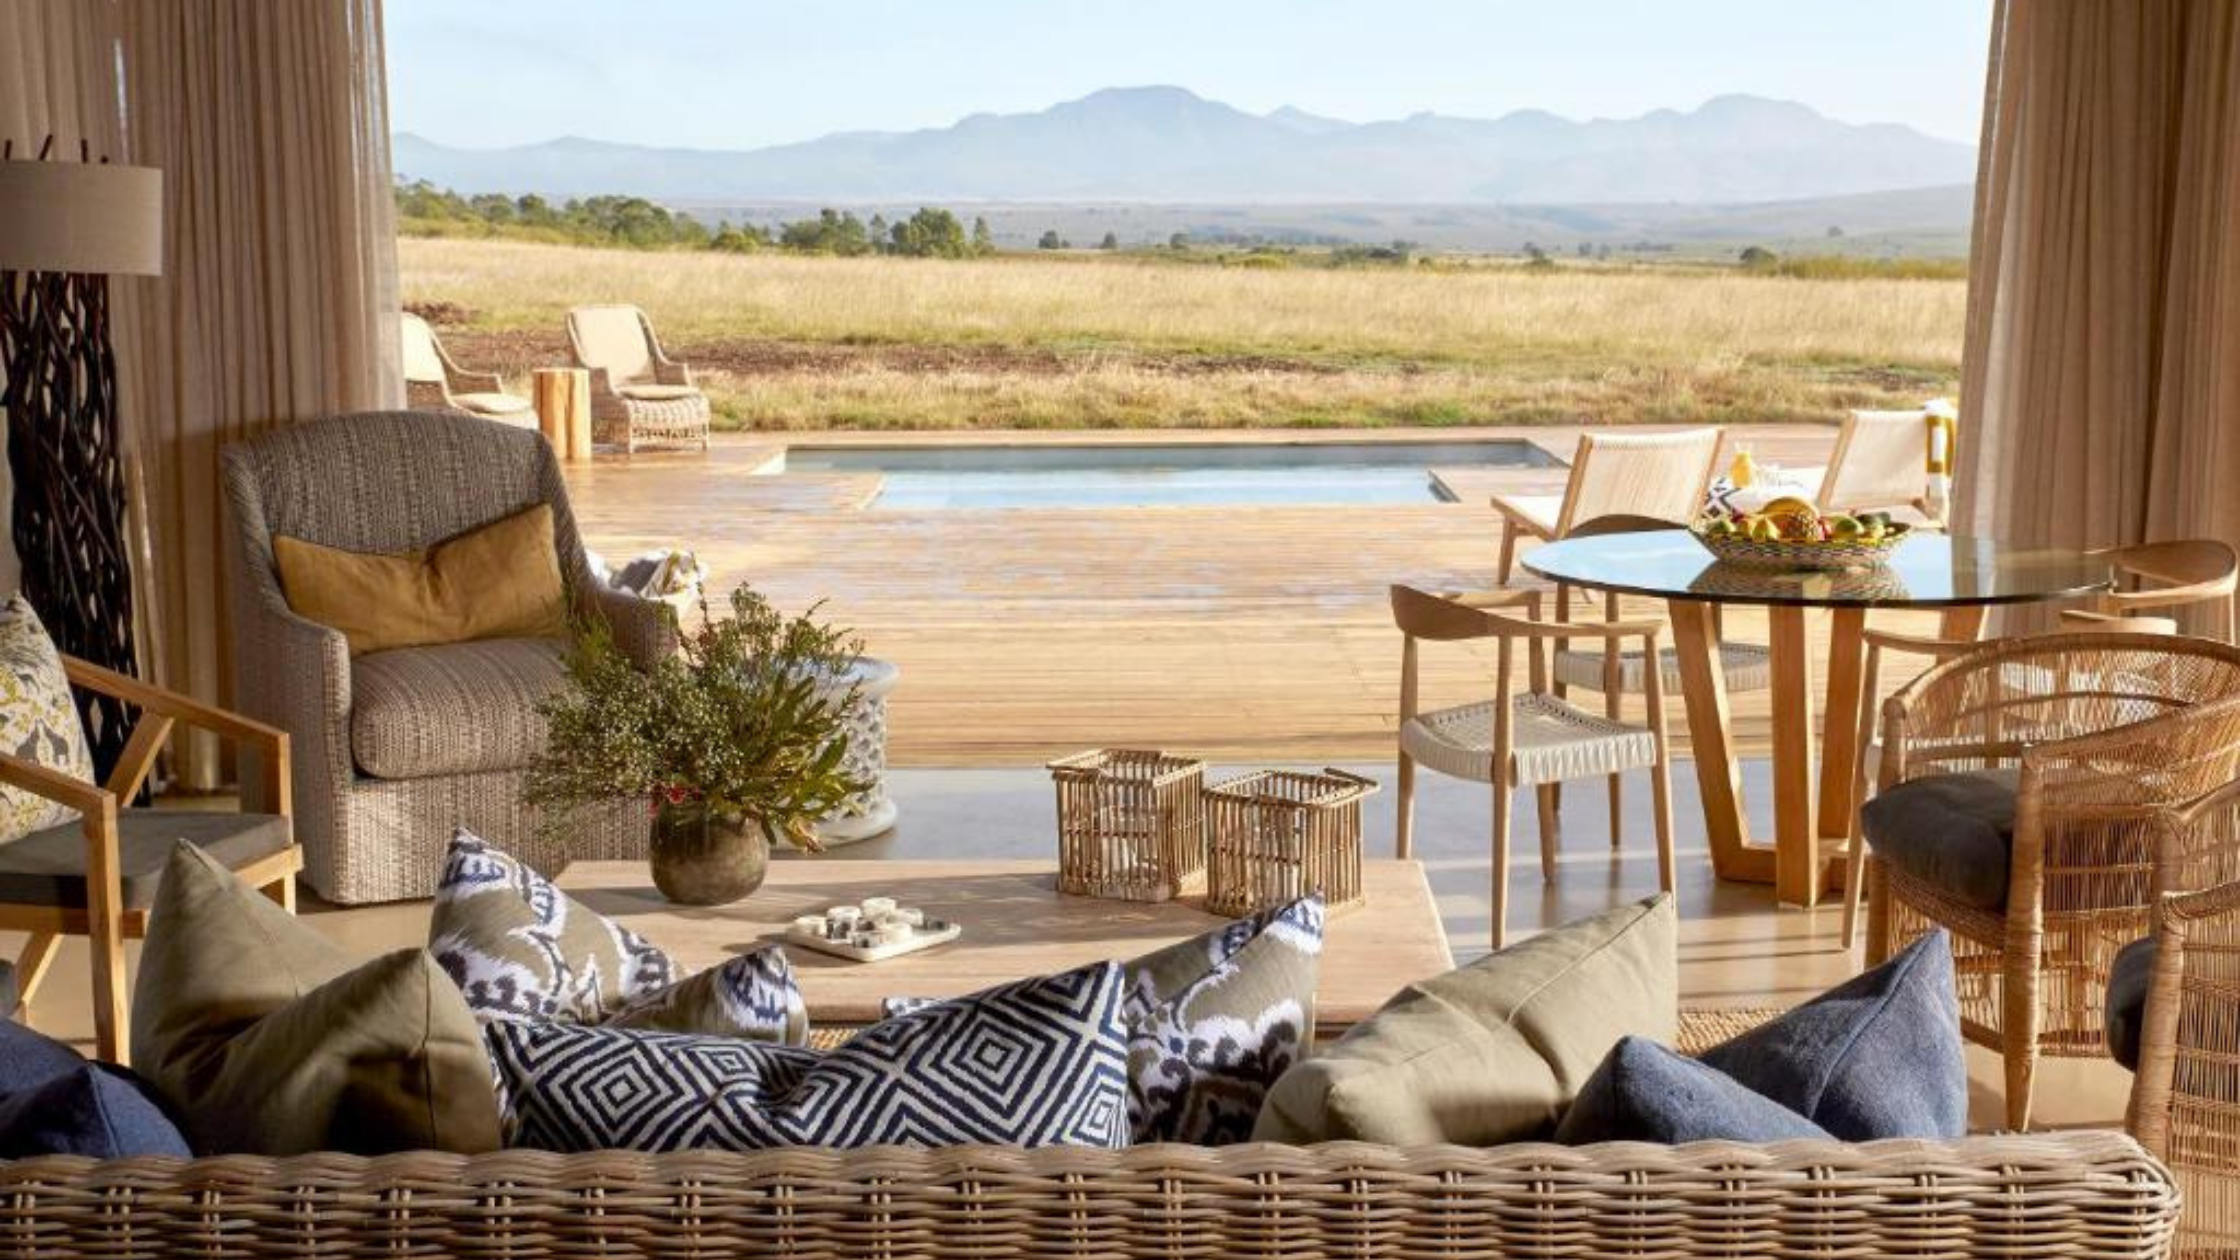 Safari Lodges in South Africa: